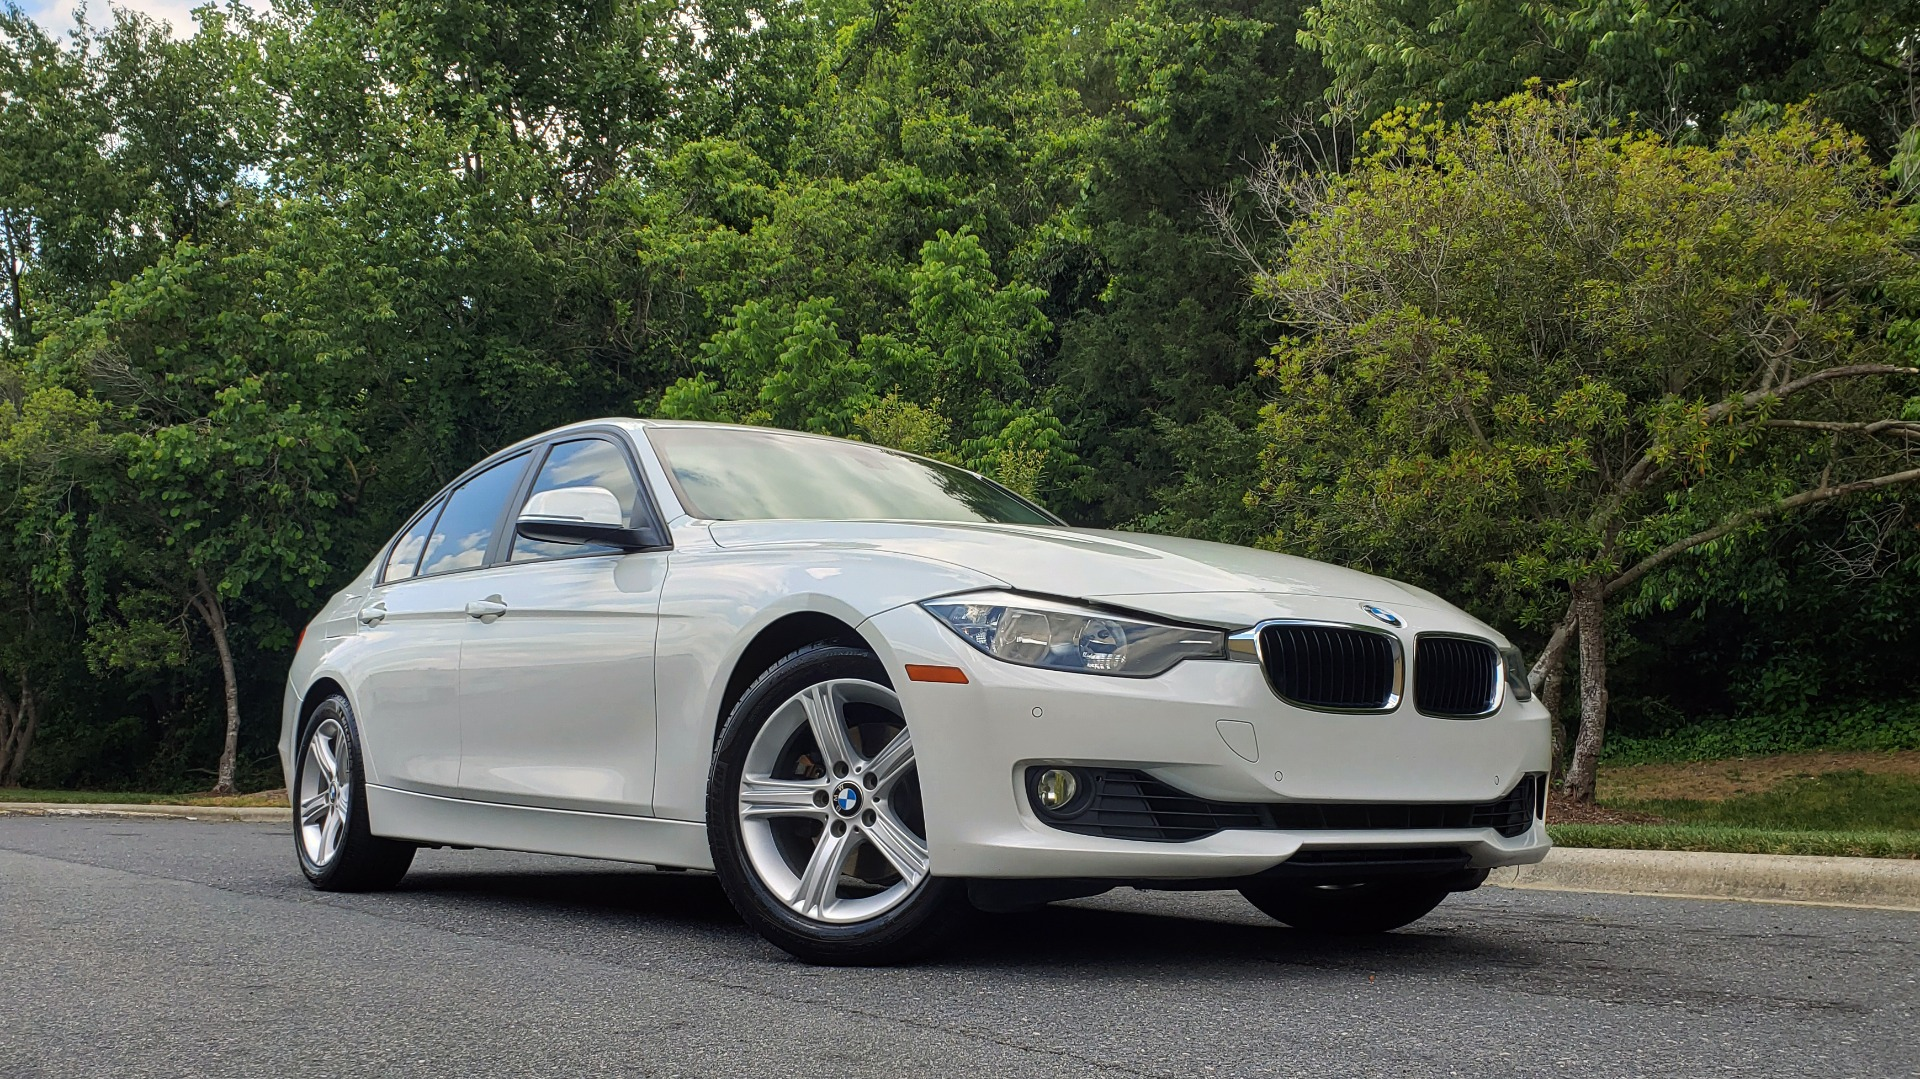 Used 2015 BMW 3 SERIES 328I PREMIUM / NAV / SUNROOF / HTD STS / DRIVER ASST / REARVIEW for sale Sold at Formula Imports in Charlotte NC 28227 5